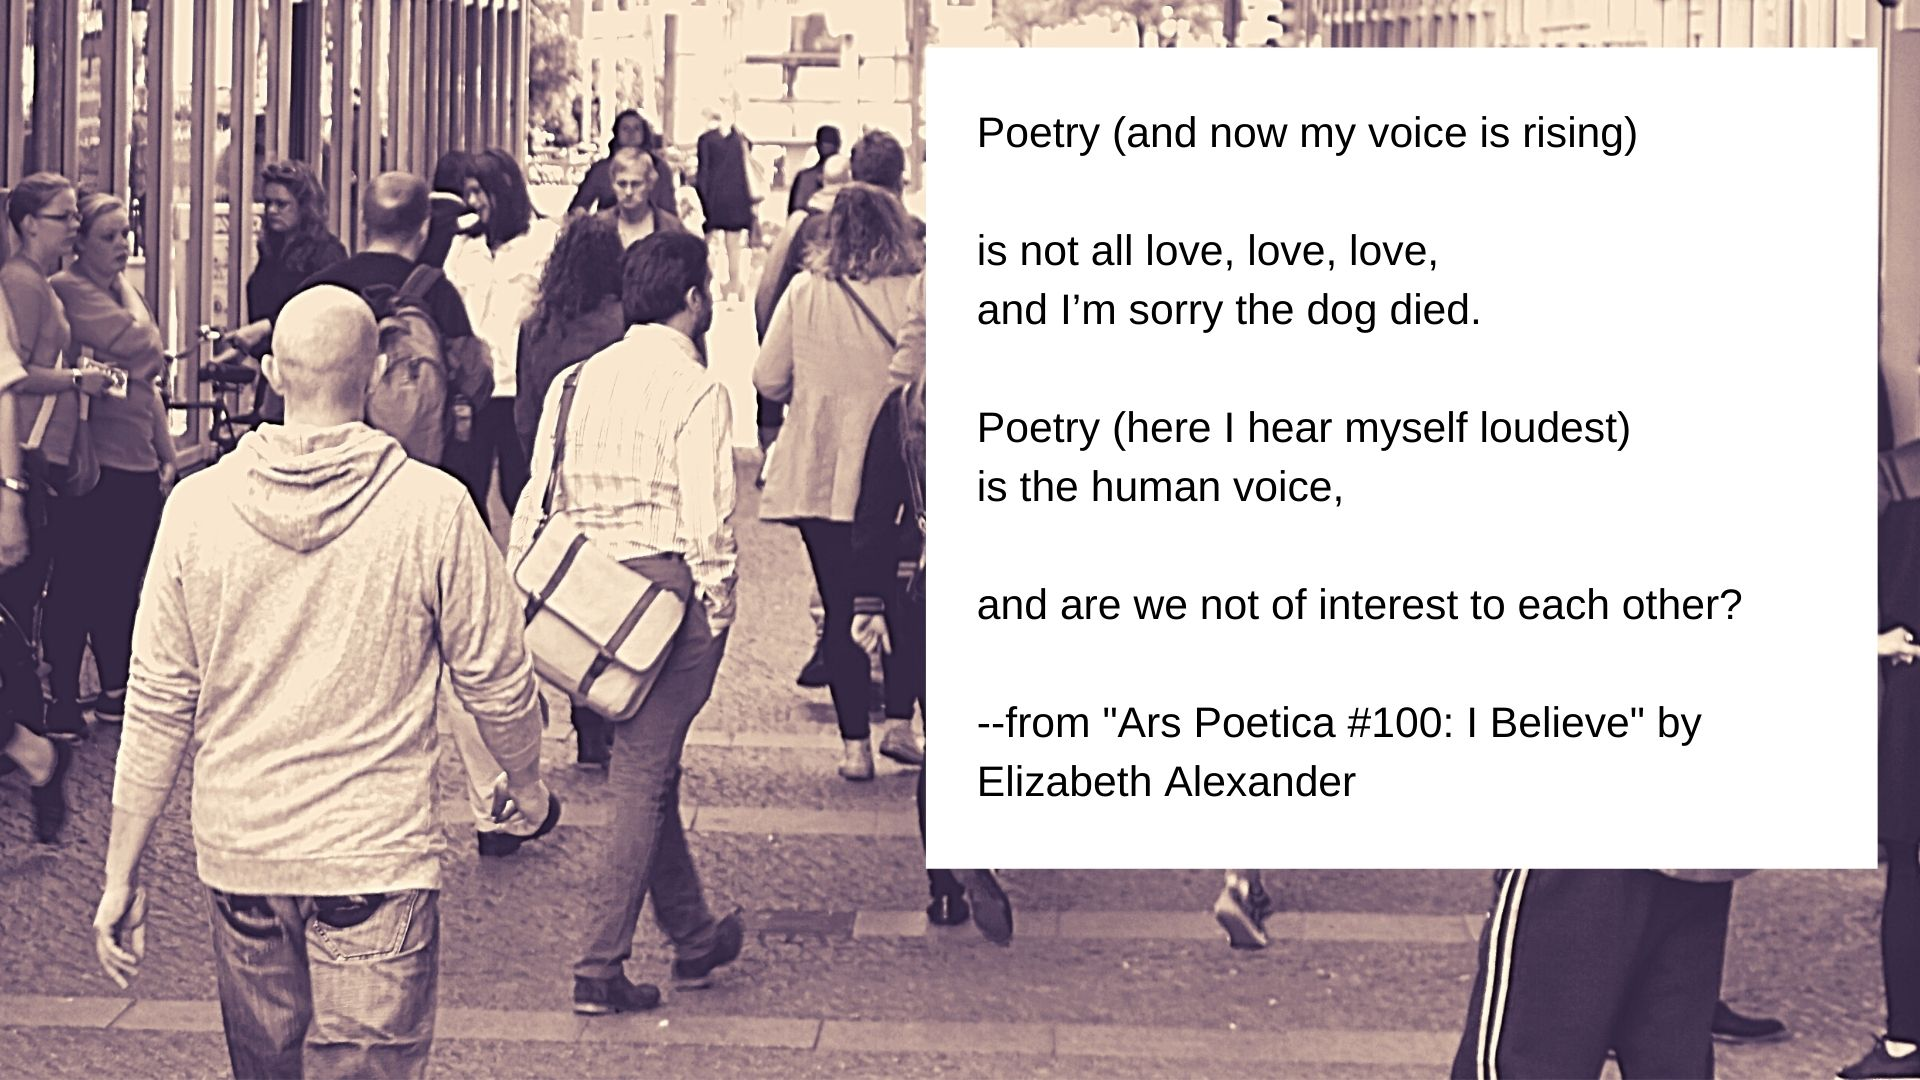 Poetry (and now my voice is rising)  is not all love, love, love, and I'm sorry the dog died.  Poetry (here I hear myself loudest) is the human voice,  and are we not of interest to each other?  --from